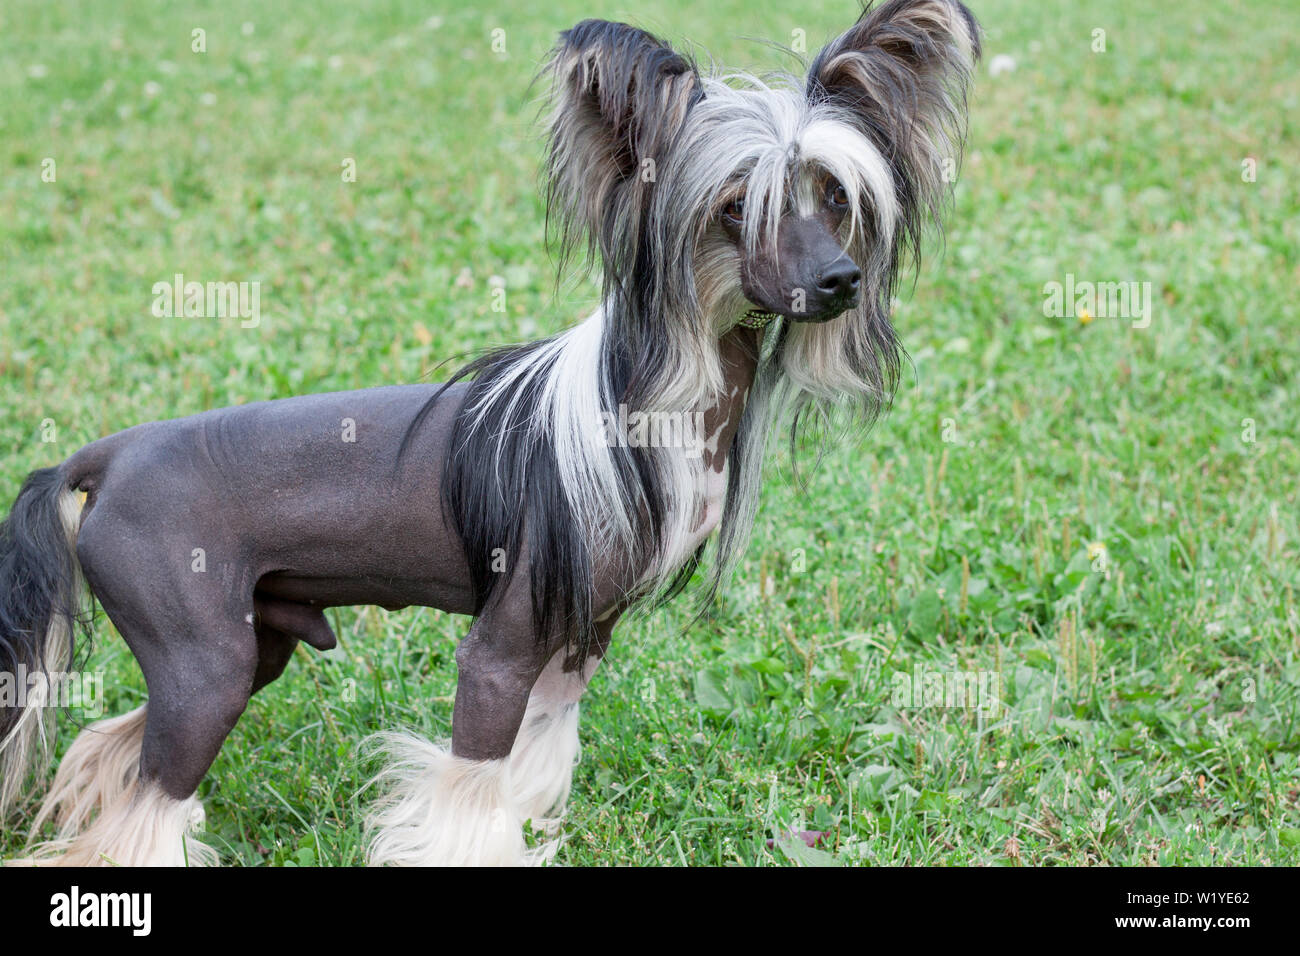 Hairless Dog Breeds Stock Photos & Hairless Dog Breeds Stock Images